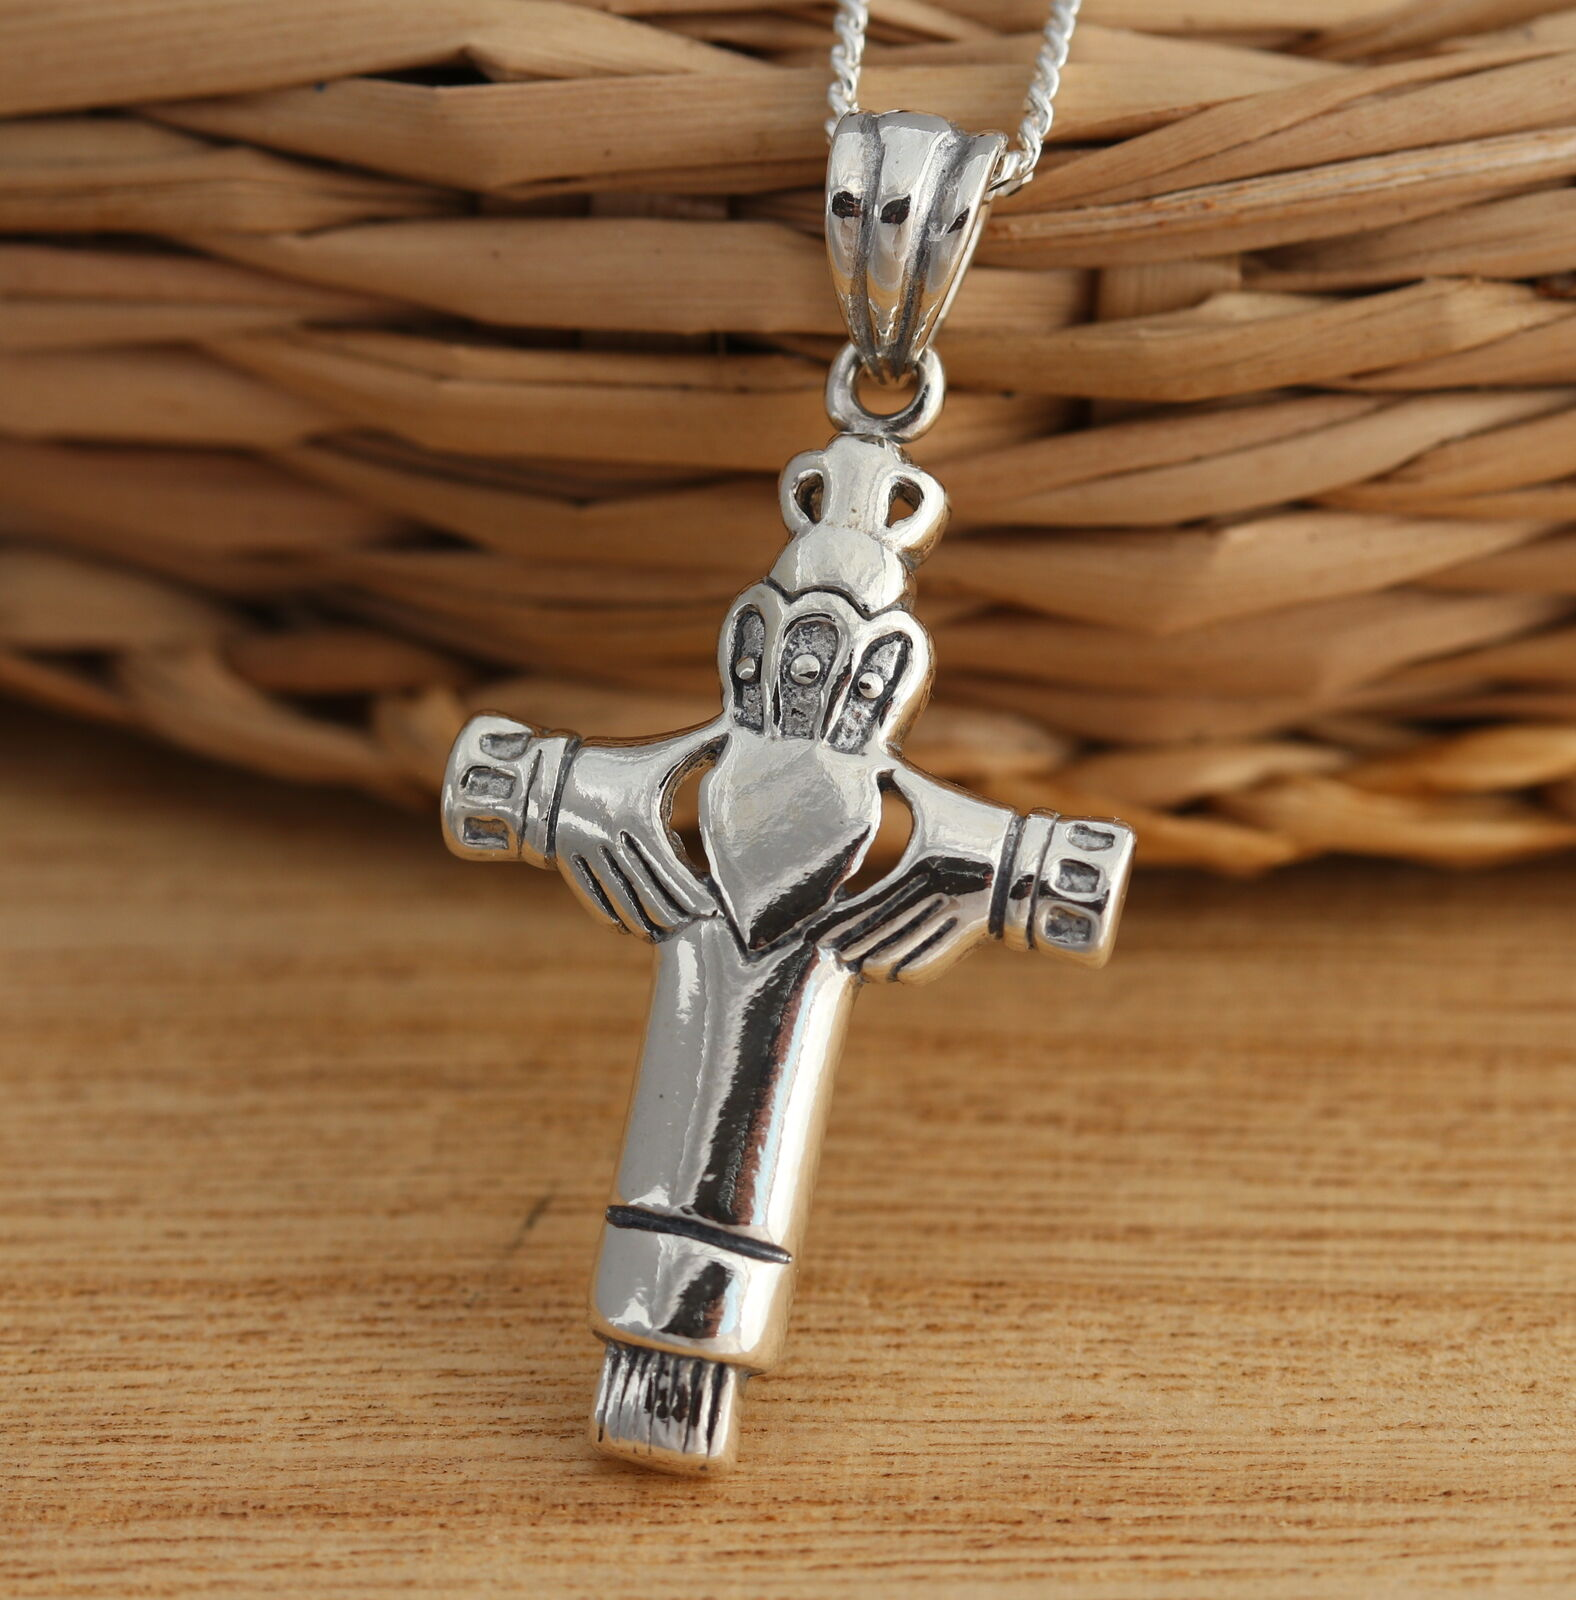 Solid 925 sterling silver celtic cross pendant with claddagh design solid 925 sterling silver celtic cross pendant with claddagh design jewellery 1 of 5only 0 available aloadofball Image collections